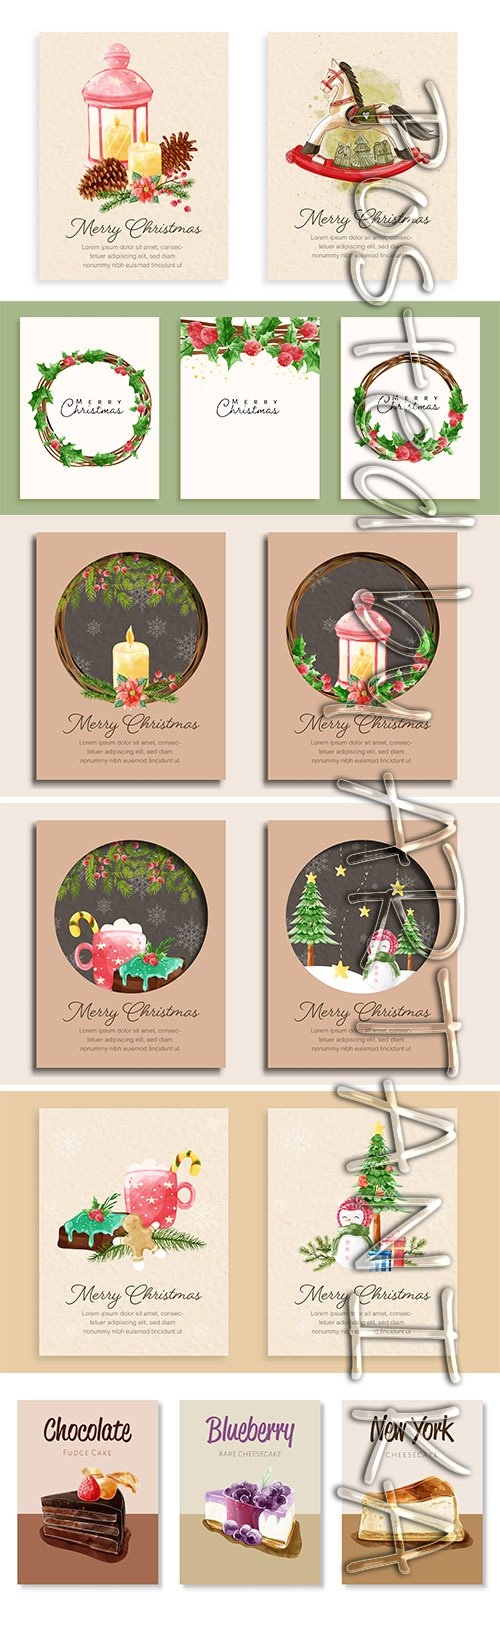 Merry Christmas Card Template Pack Vol 2